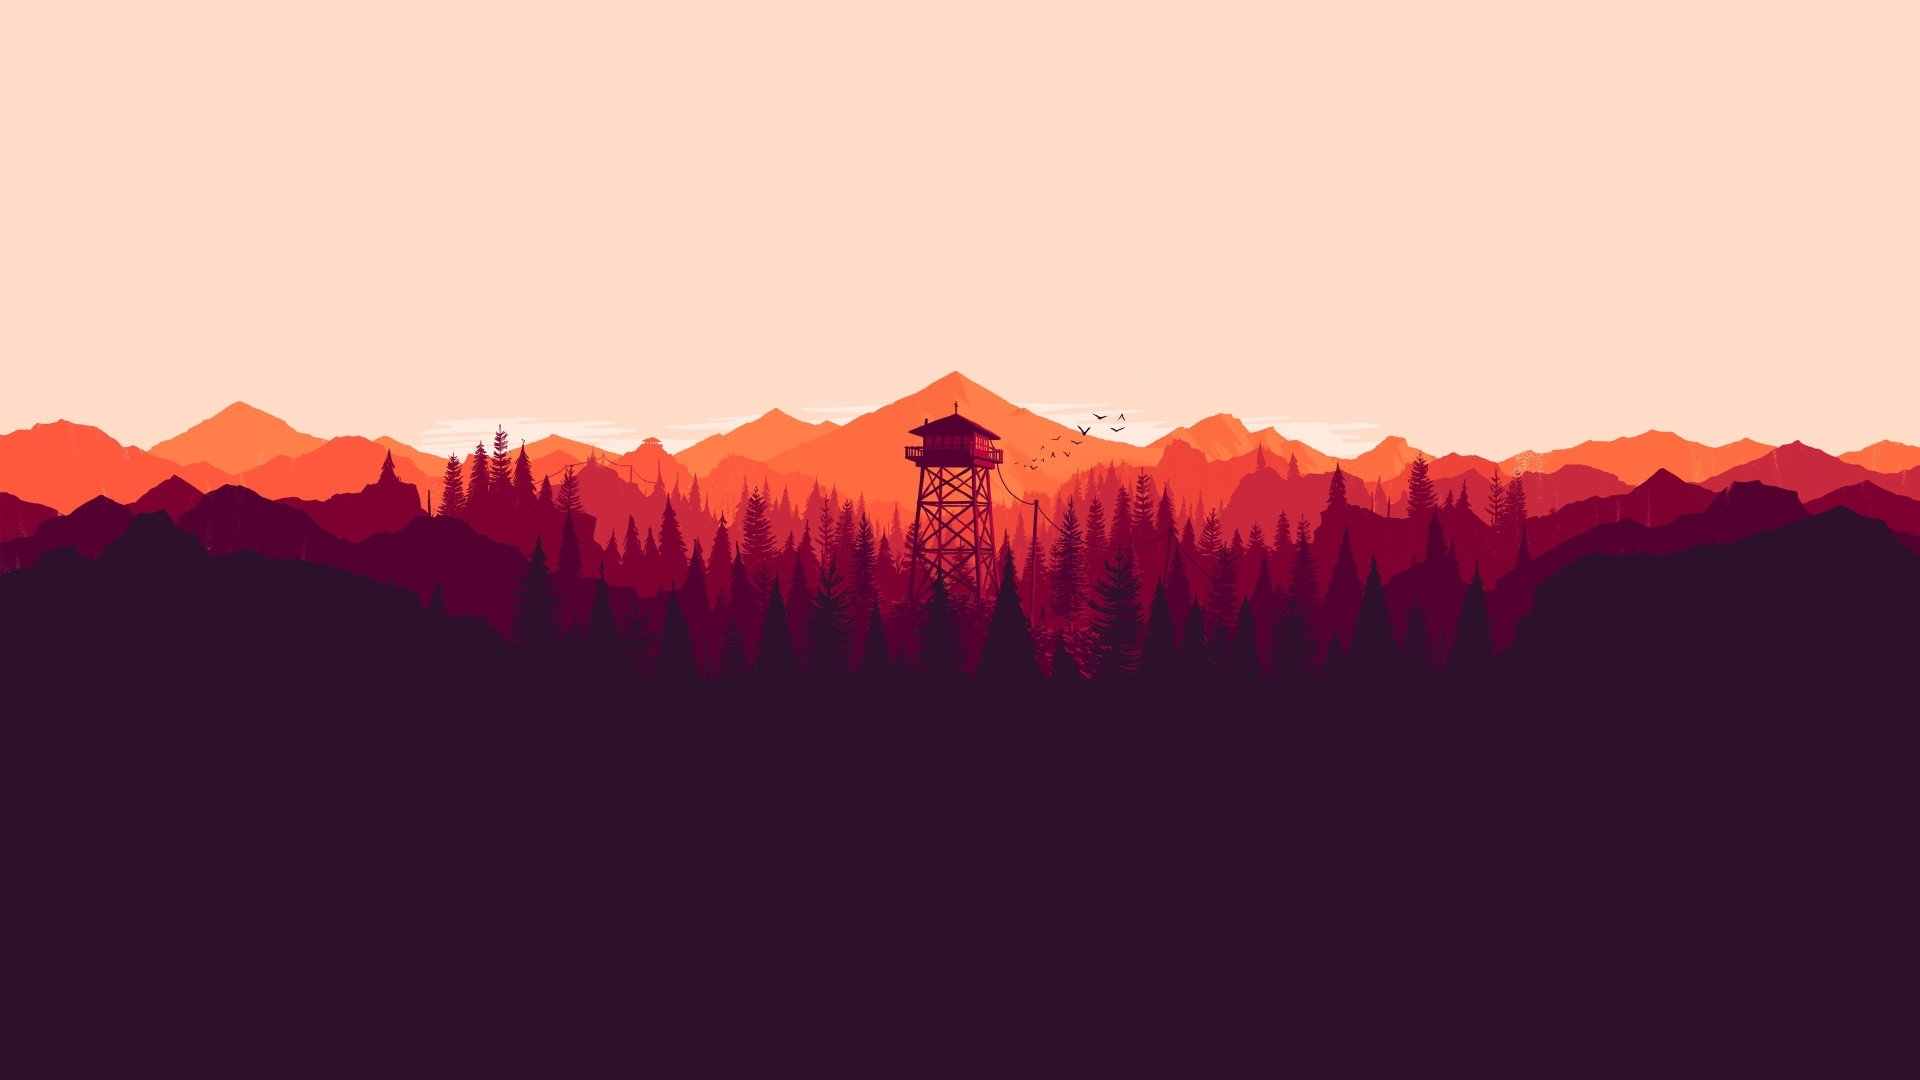 51 Firewatch Hd Wallpapers Background Images Wallpaper Abyss